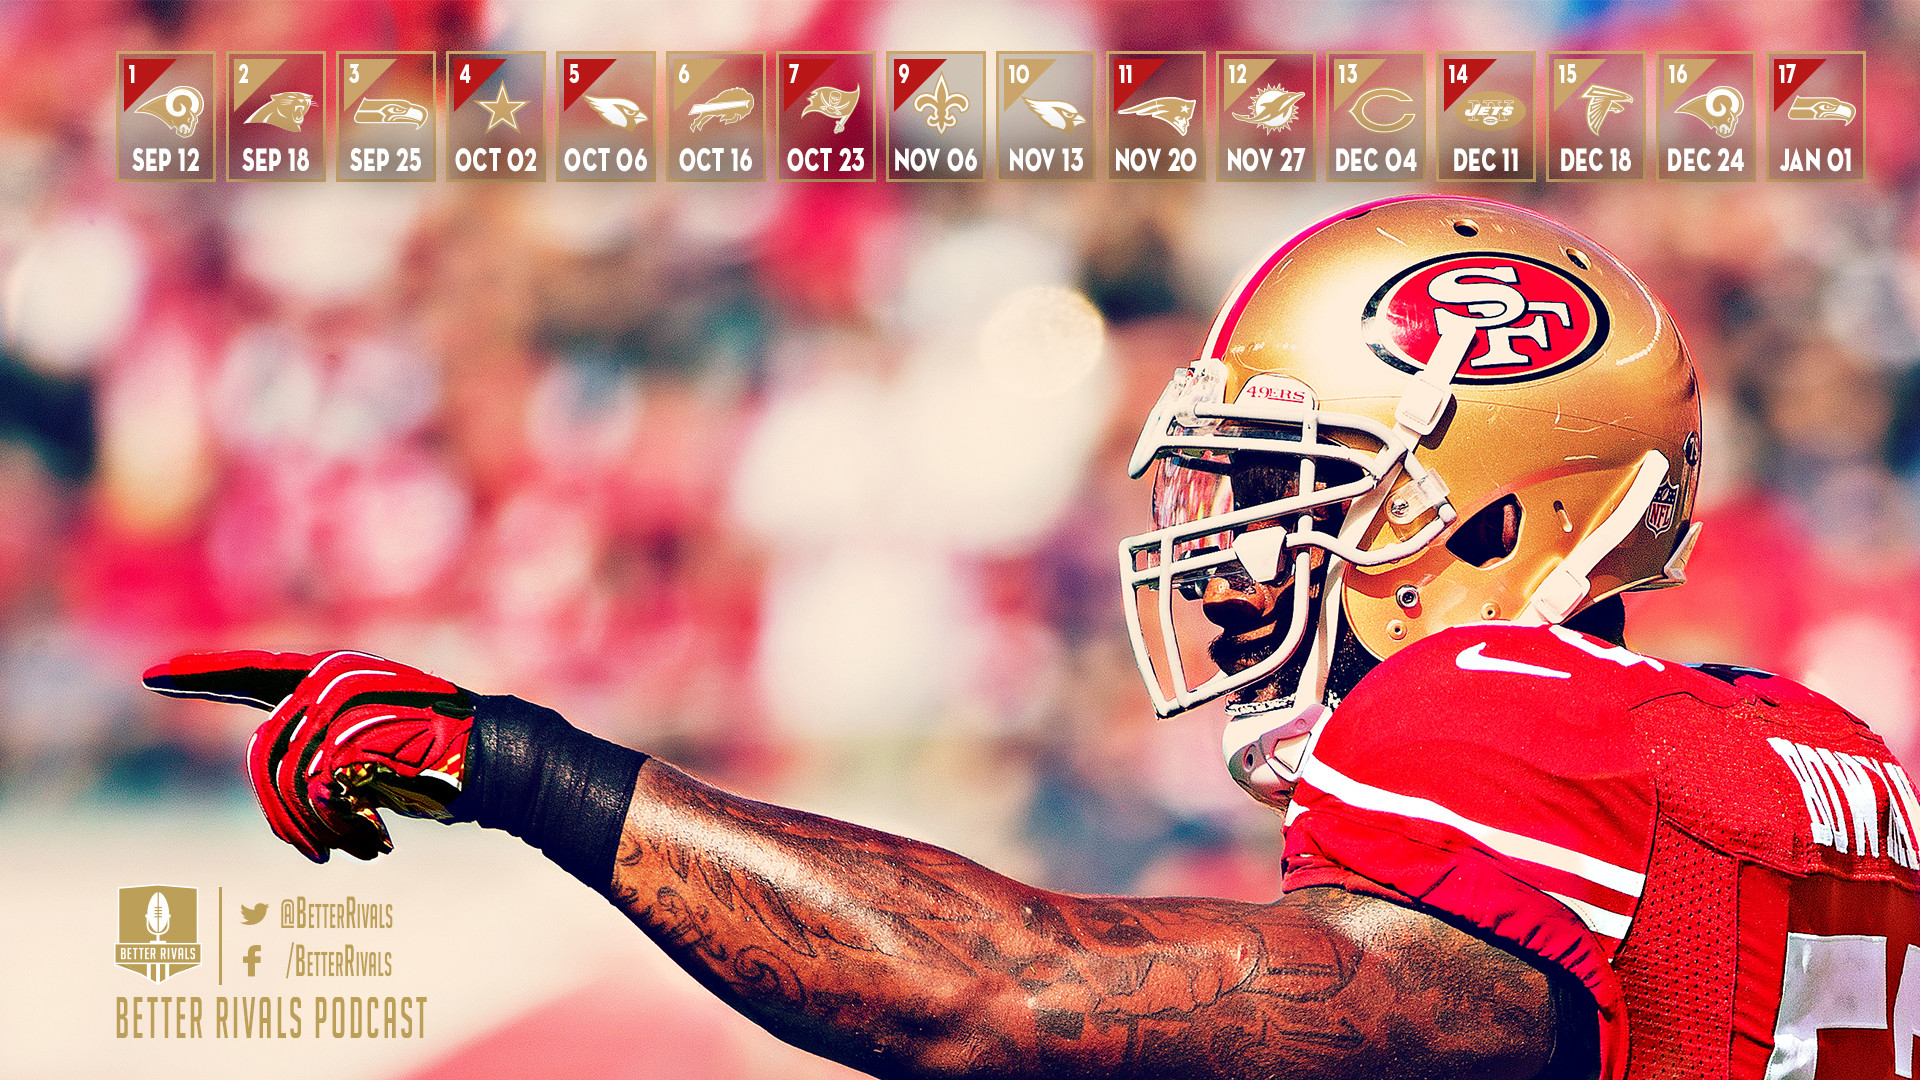 1920x1080 New 49ers Wallpapers for Desktop and Mobile